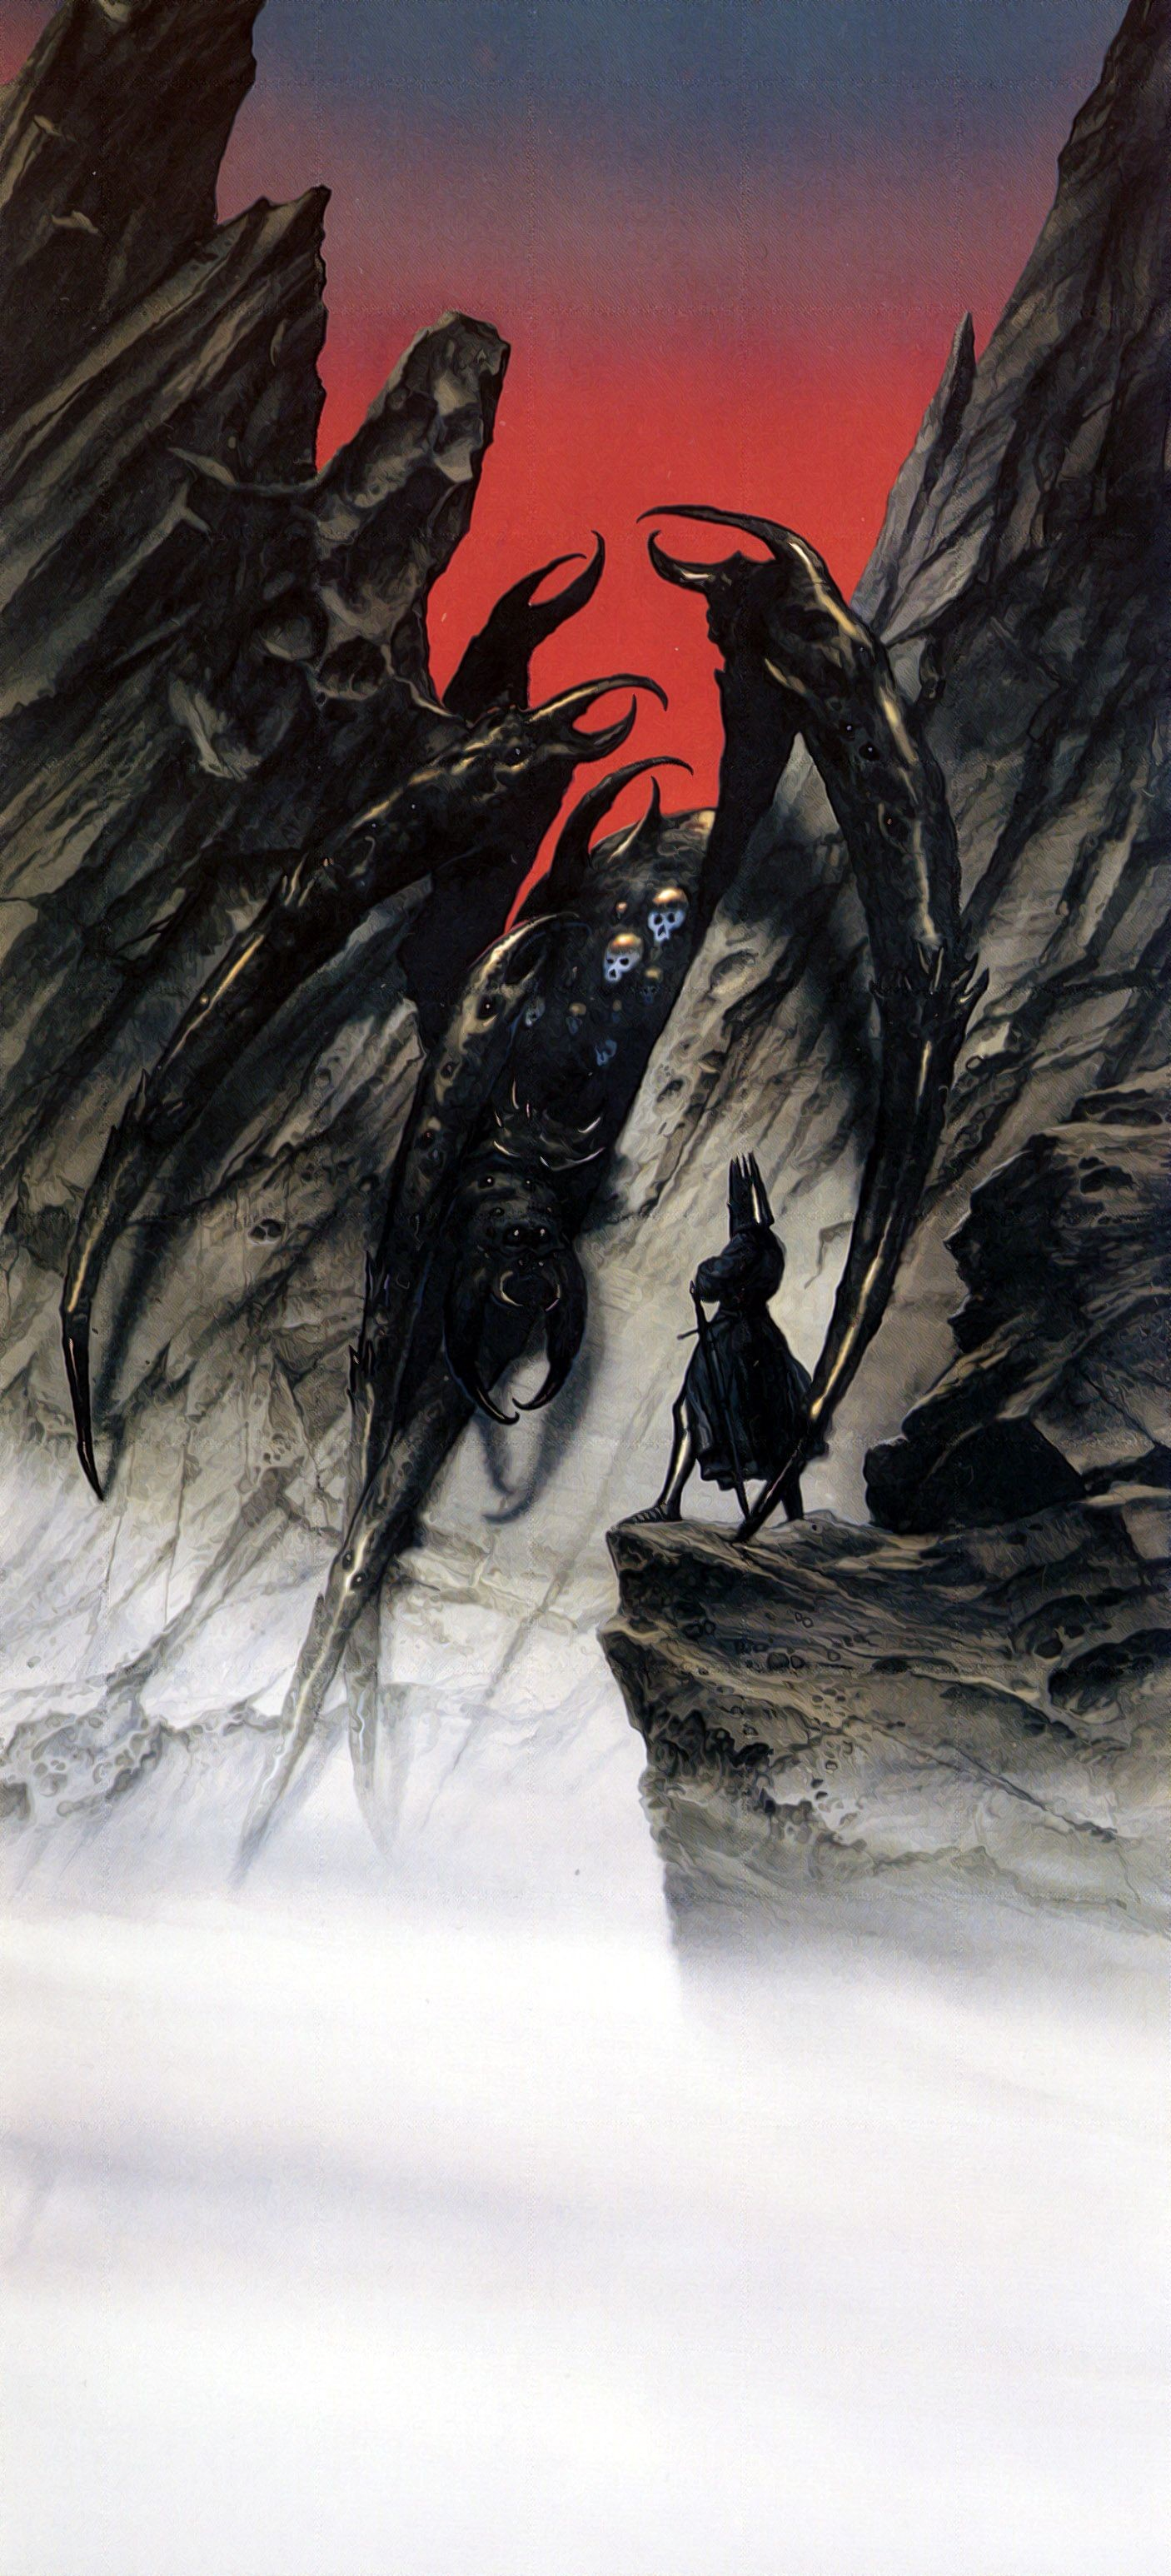 Res: 1406x3092, The Lord of the Rings - John Howe Art - Morgoth speaks to the Ungoliant